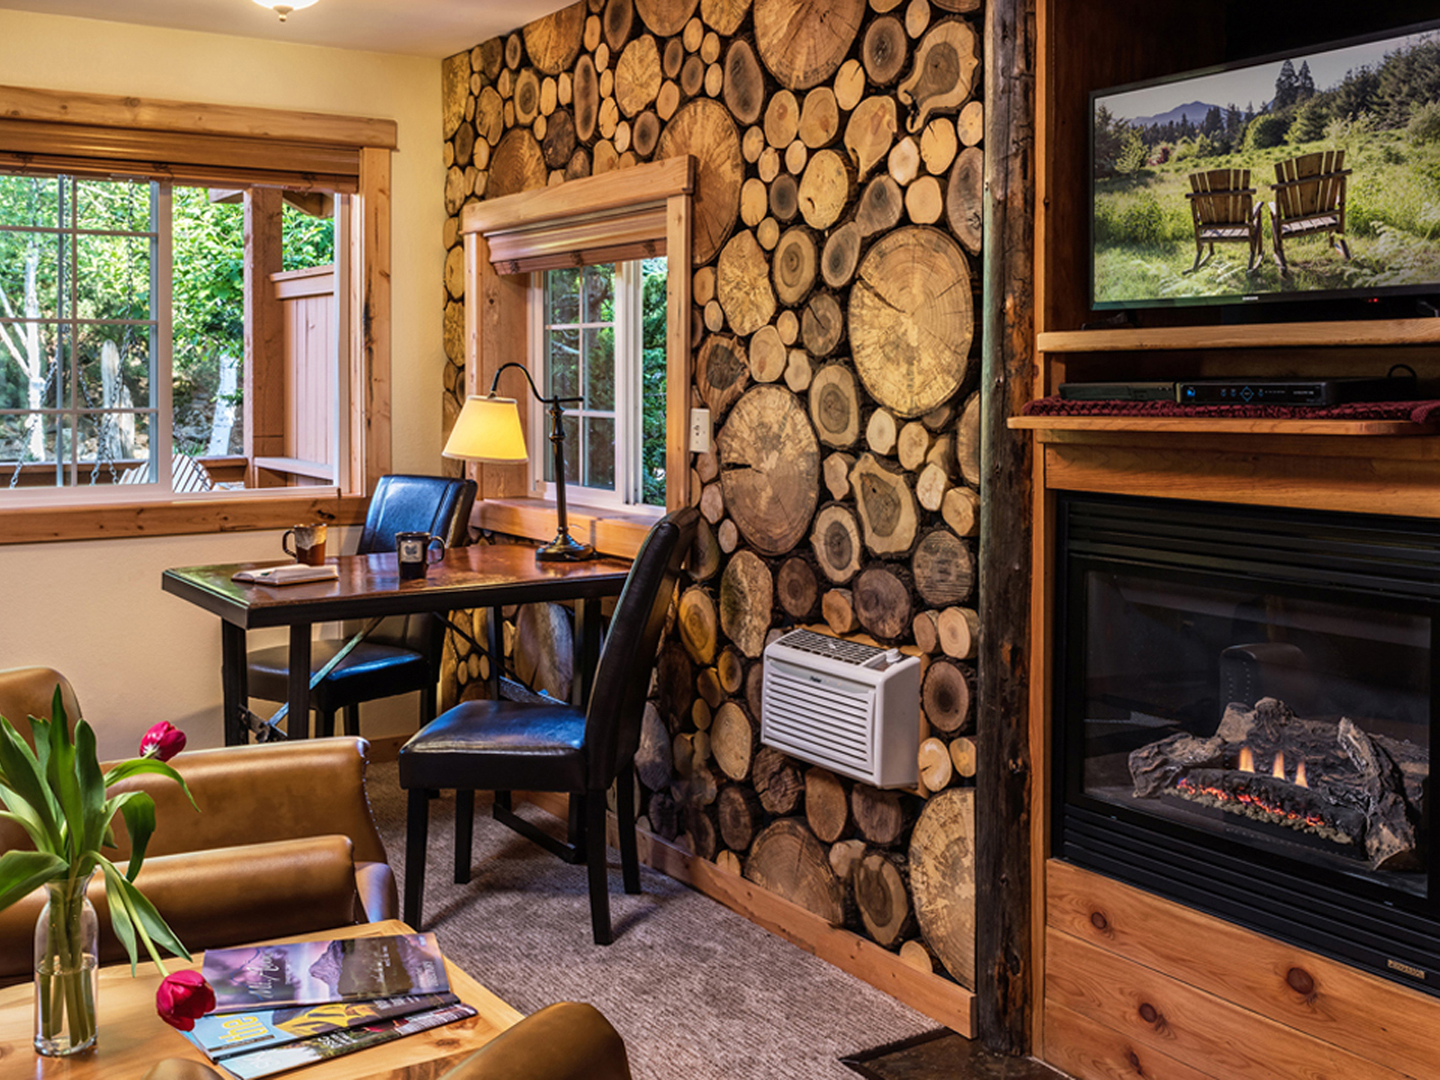 A living room filled with furniture and a fire place at Carson Ridge Luxury Cabins.